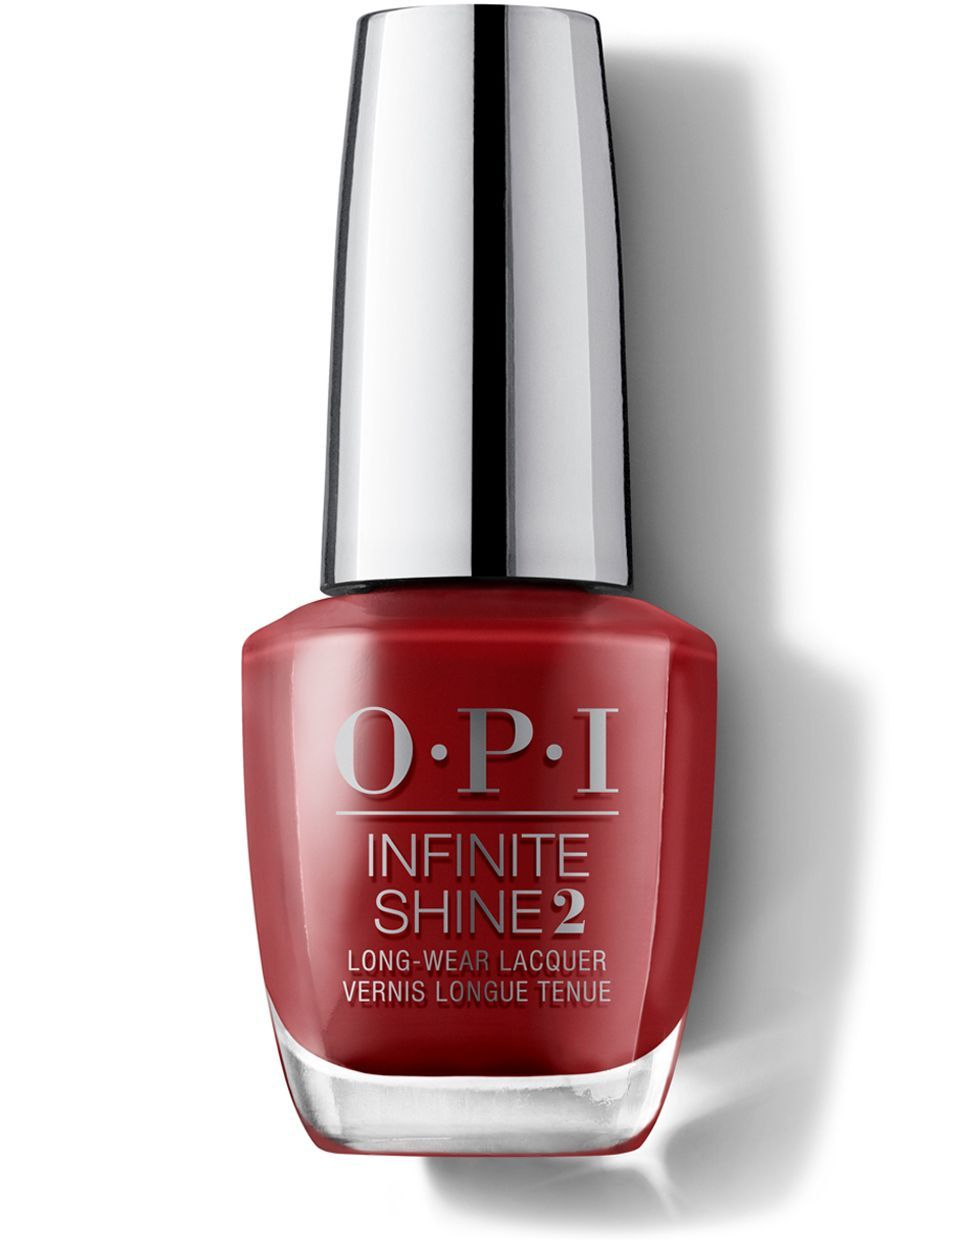 OPI in I Love You Just Be,Cusco